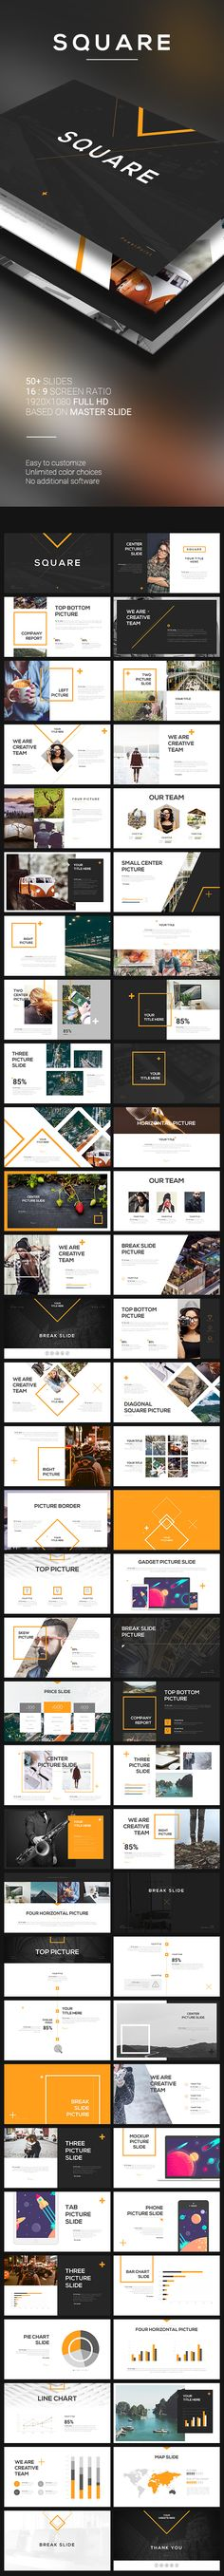 Square Keynote Template. Download here: http://graphicriver.net/item/square-keynote-template/15660452?ref=ksioks